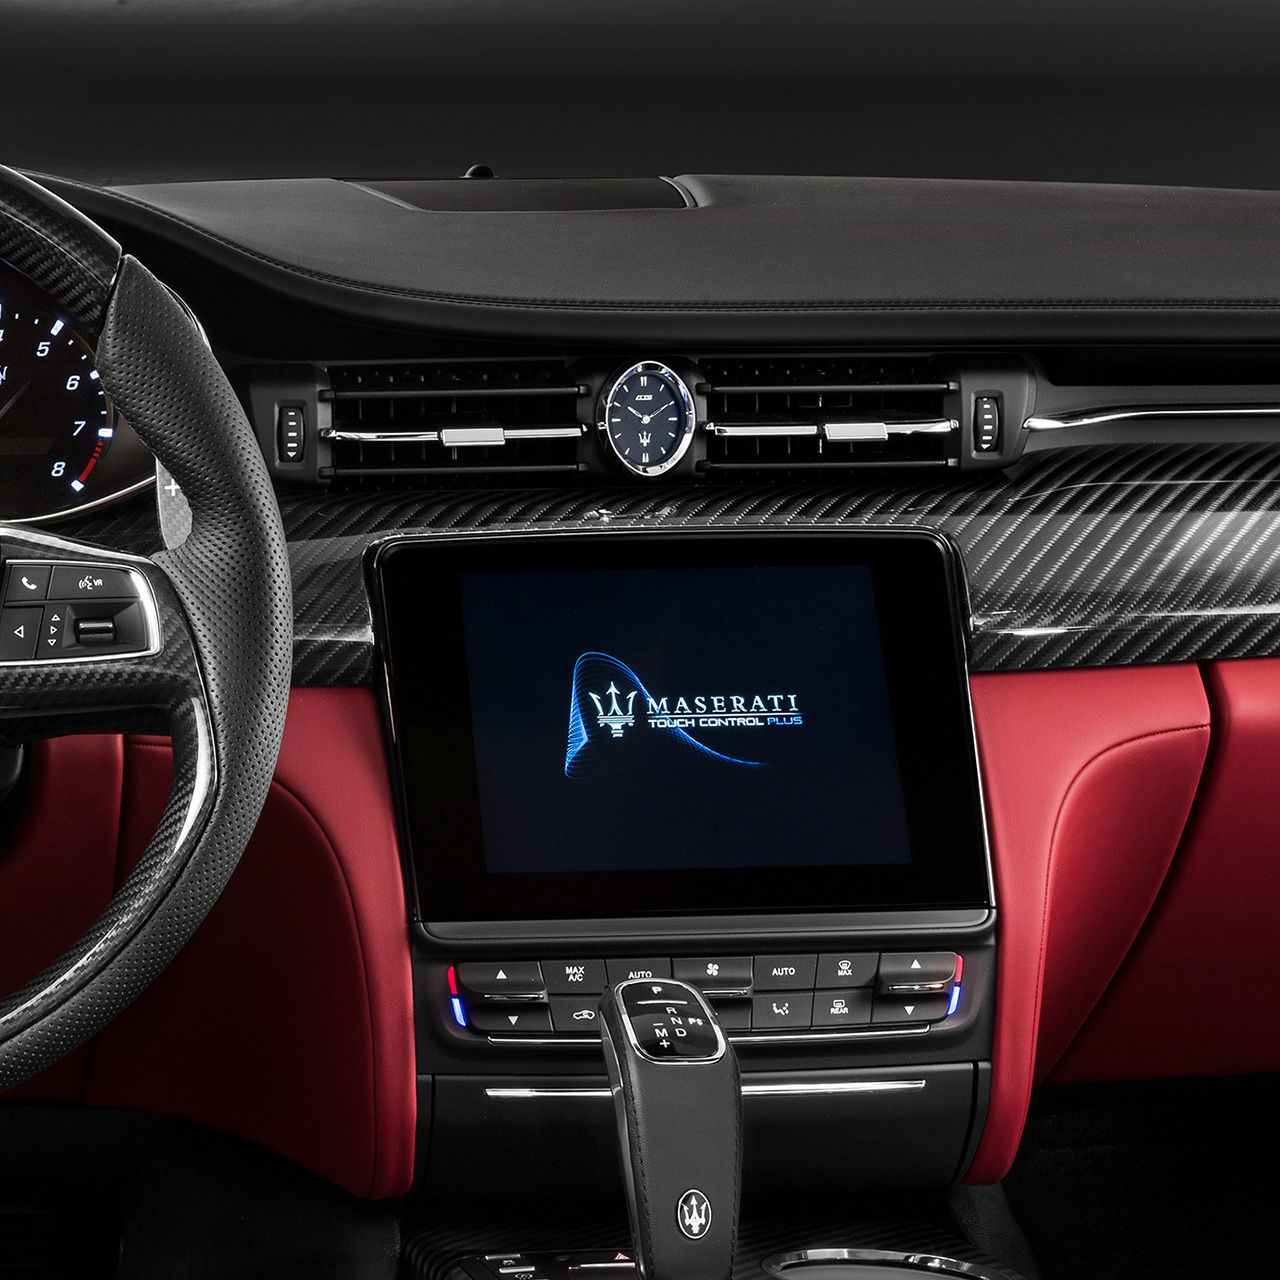 Maserati Quattroporte Innenausstattung - Display - Infotainment und App-Connectivity